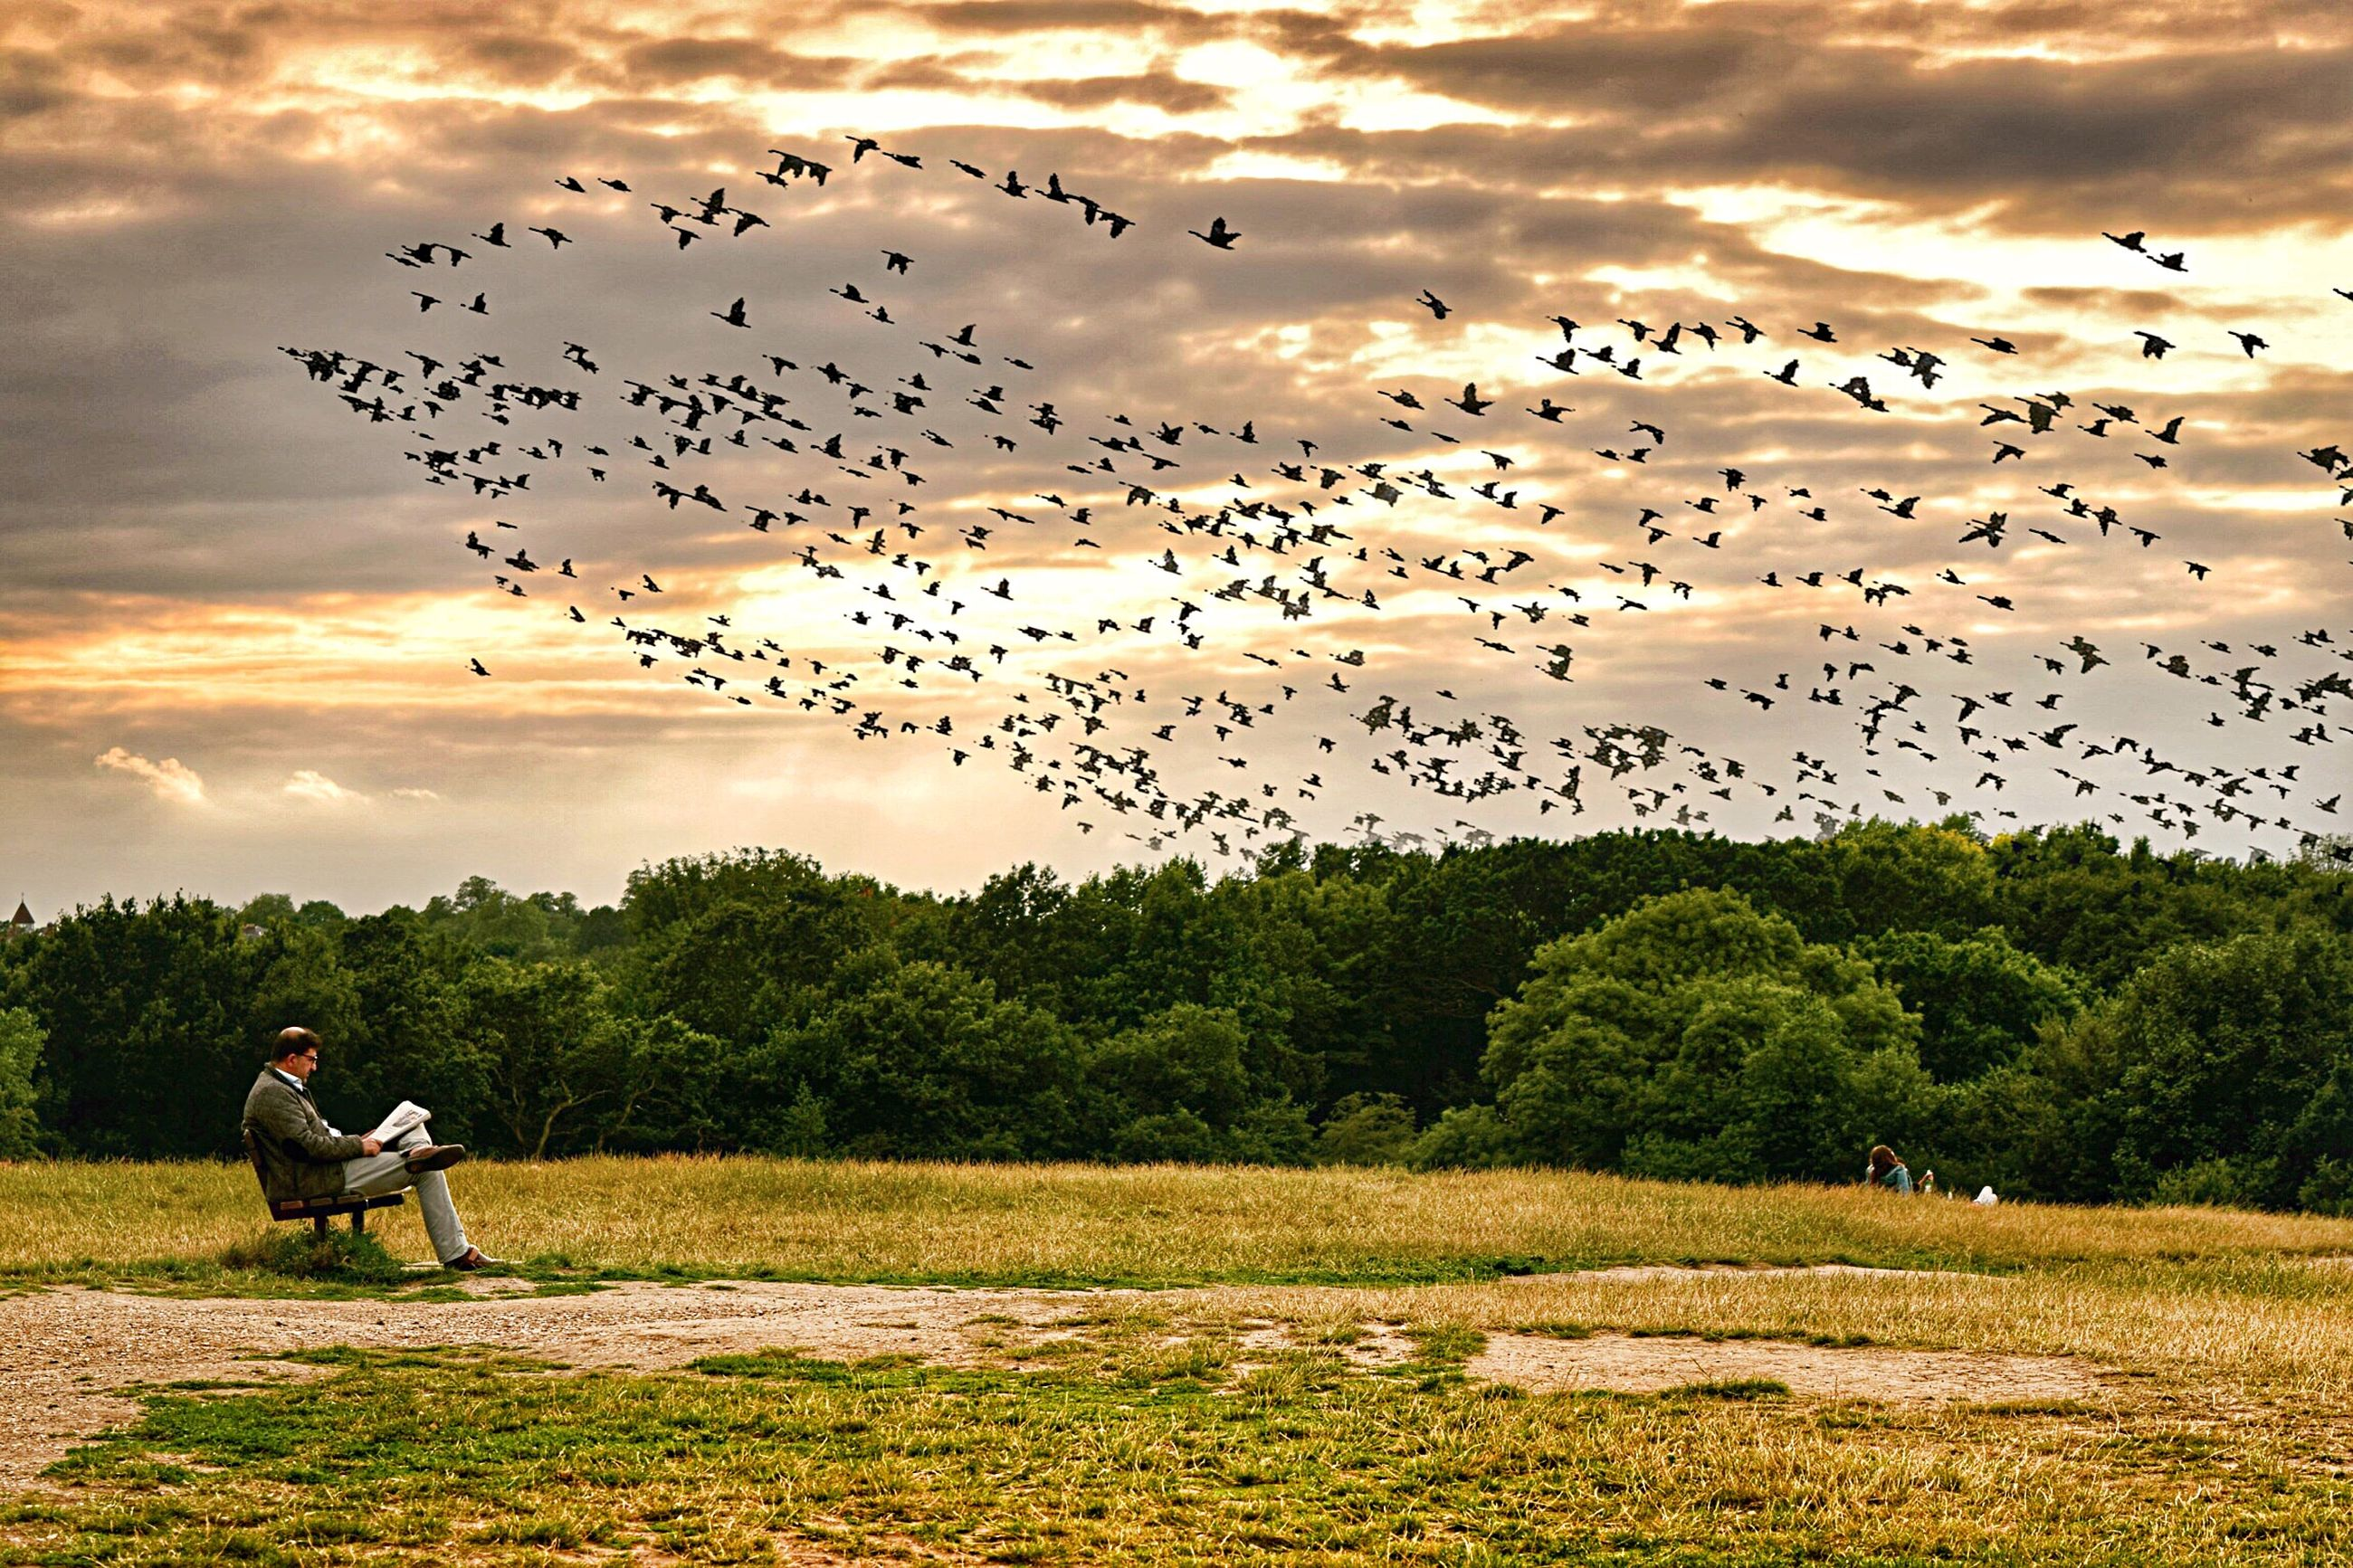 bird, large group of animals, flying, flock of birds, animals in the wild, sunset, sky, animal wildlife, nature, mid-air, beauty in nature, togetherness, cloud - sky, migrating, real people, scenics, full length, field, motion, landscape, outdoors, men, tree, grass, spread wings, mammal, day, people